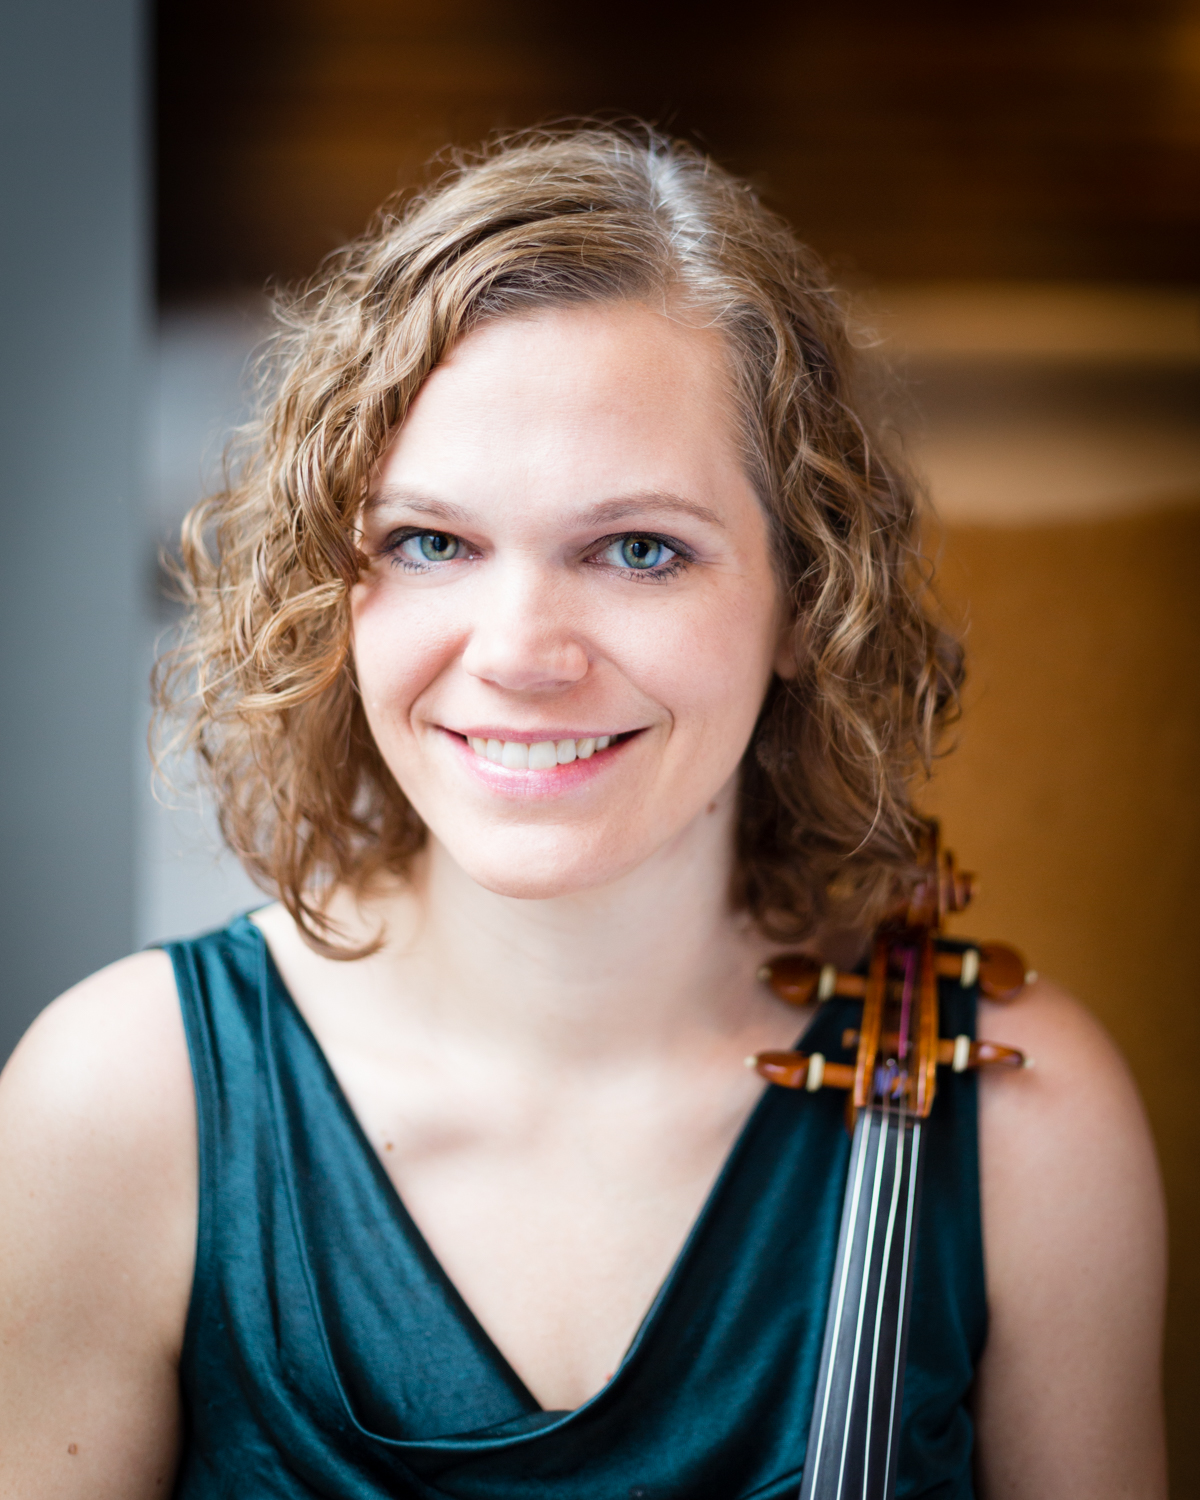 Andra Kulans, Violinist, Violist Client Liaison, Founding Member  DePaul University School of Music  Every quartet needs a resident rock star. Yes, Andra's classically trained, but much of her freelance work has been recording for and playing with local and national bands. She has performed on Late Night with Jimmy Fallon, The Jimmy Kimmel Show, and Conan, and has toured North America and Europe with various bands including Grammy Award-winner Glen Hansard, Iron & Wine, Bill Callahan, Rilo Kiley, Belle and Sebastian, and was a member of Chicago-based band The 1900's. When she's not on the big stage or playing with QP, she also works as a private violin instructor. And did we mention that she plays violin and viola? That makes her a pretty valuable asset.  Andra's teachers have included Mark Zinger, violin, and Rami Solomonow, viola.